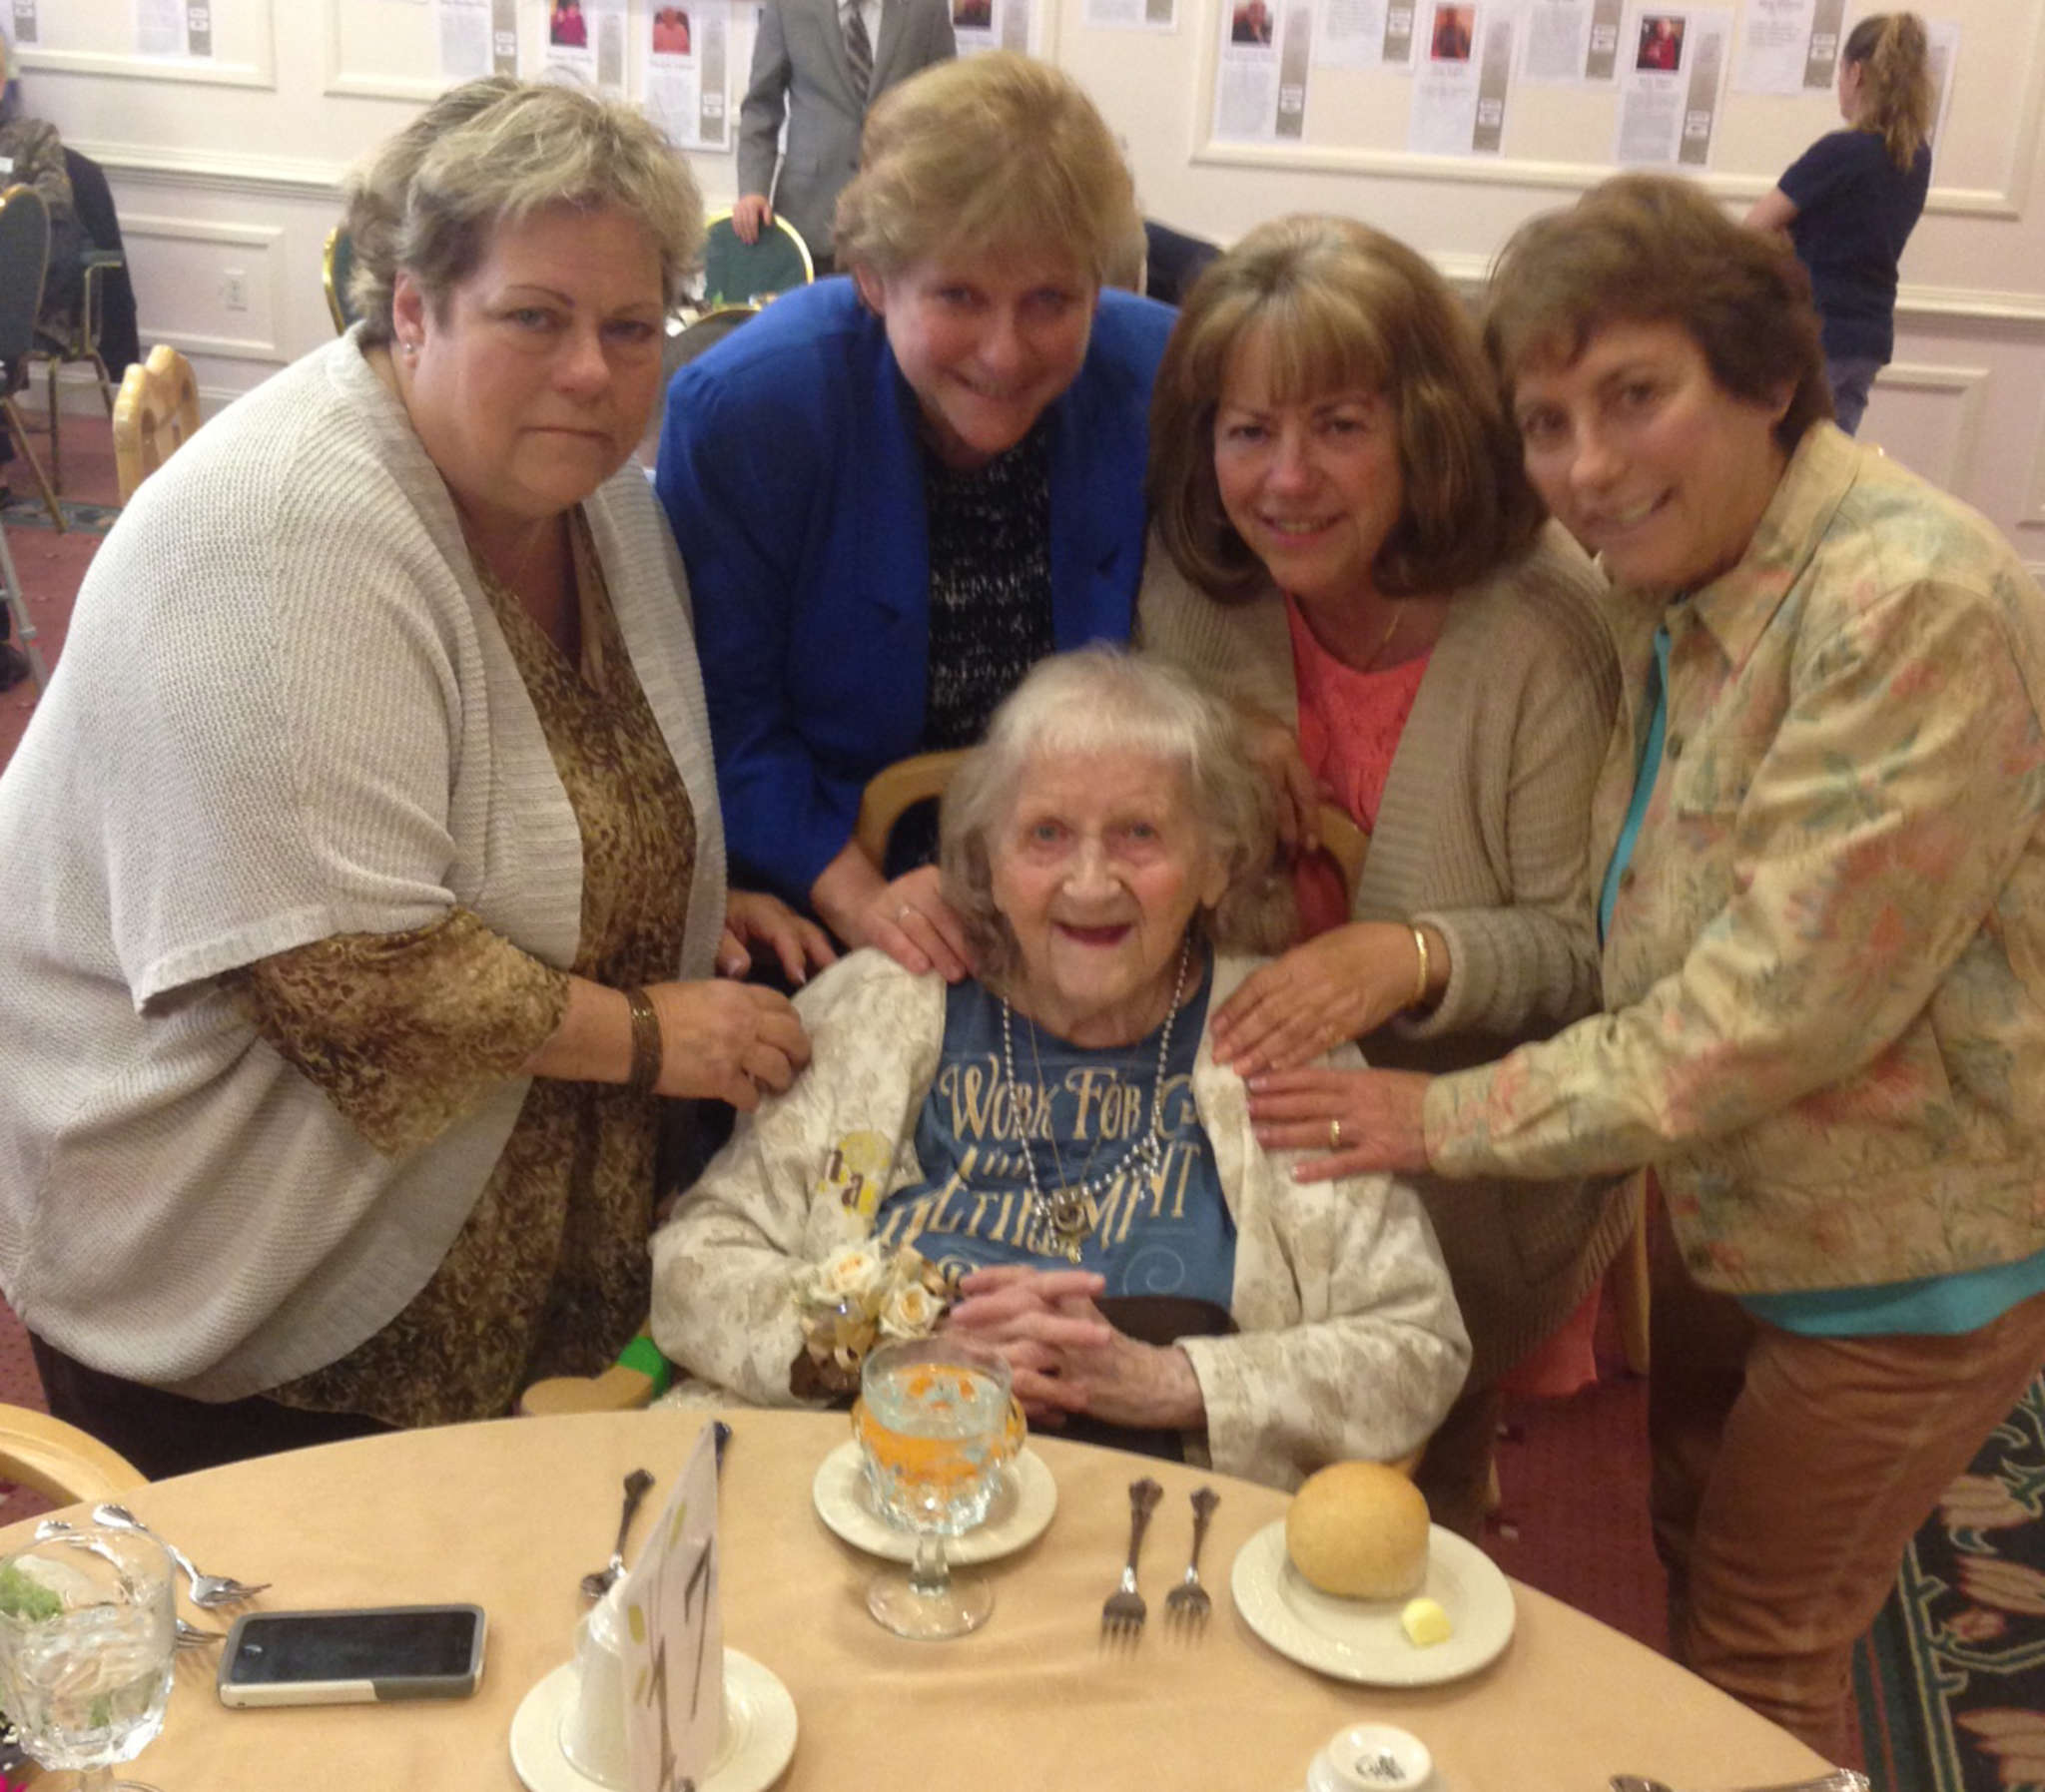 Hatboro´s Edna Massimilla, just turned 100 and still writing songs, is surrounded by daughters (from left) Kathy Tramontana, Alice Cook, Joan Pascucci, and Mary Dunlap.